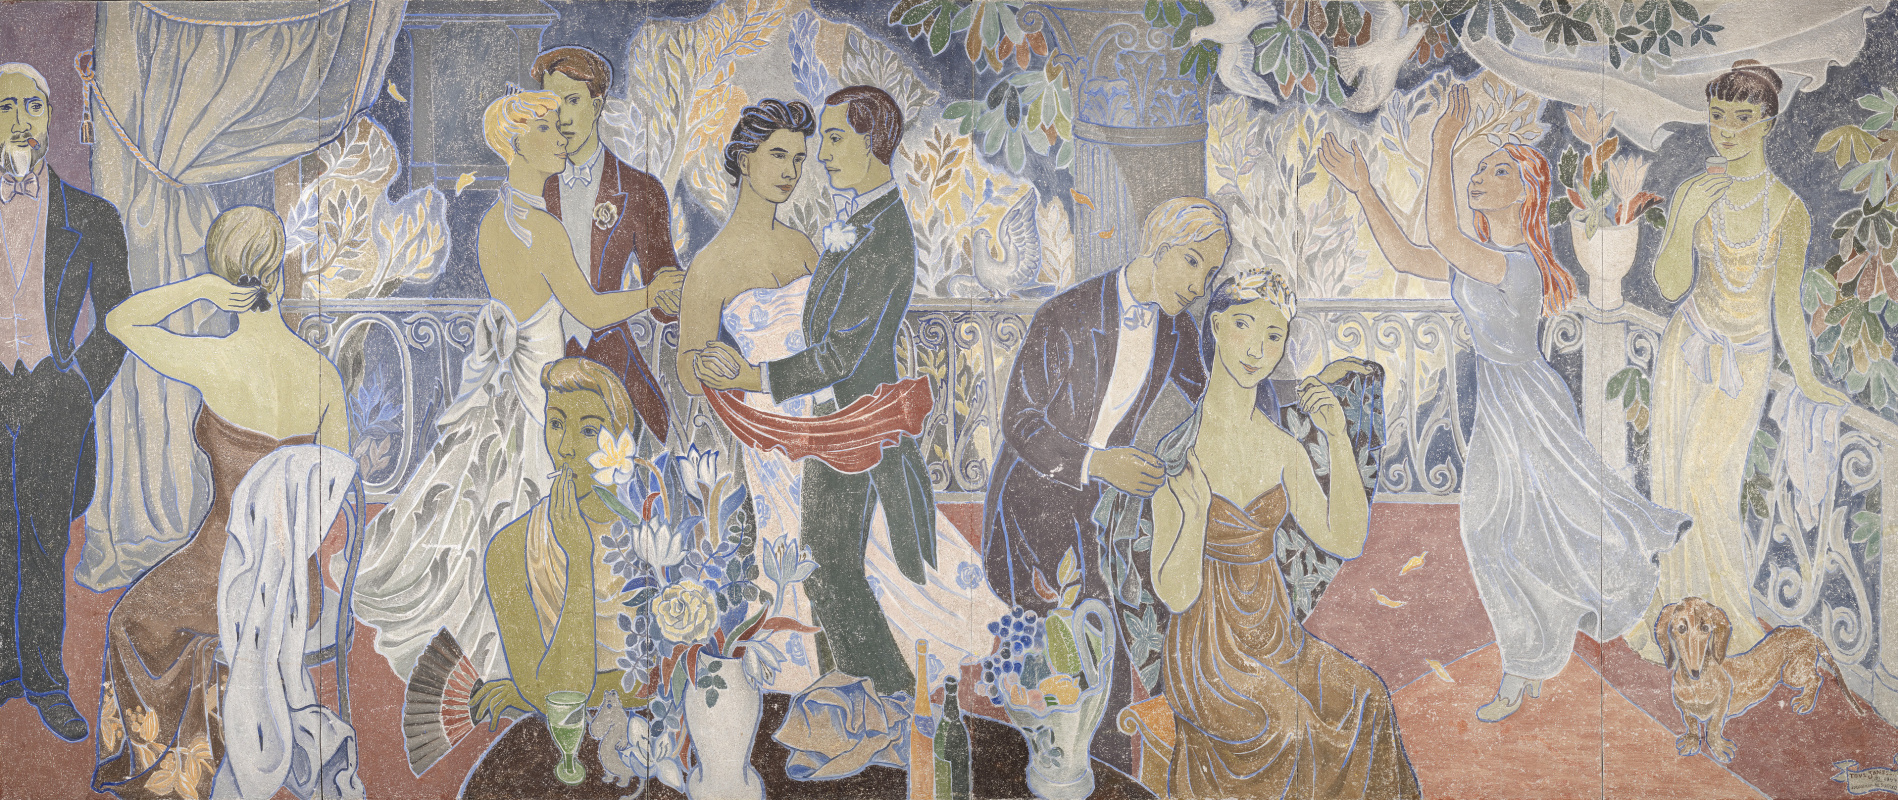 Tove Jansson. Holiday in the city. The painting of the City Hall of Helsinki